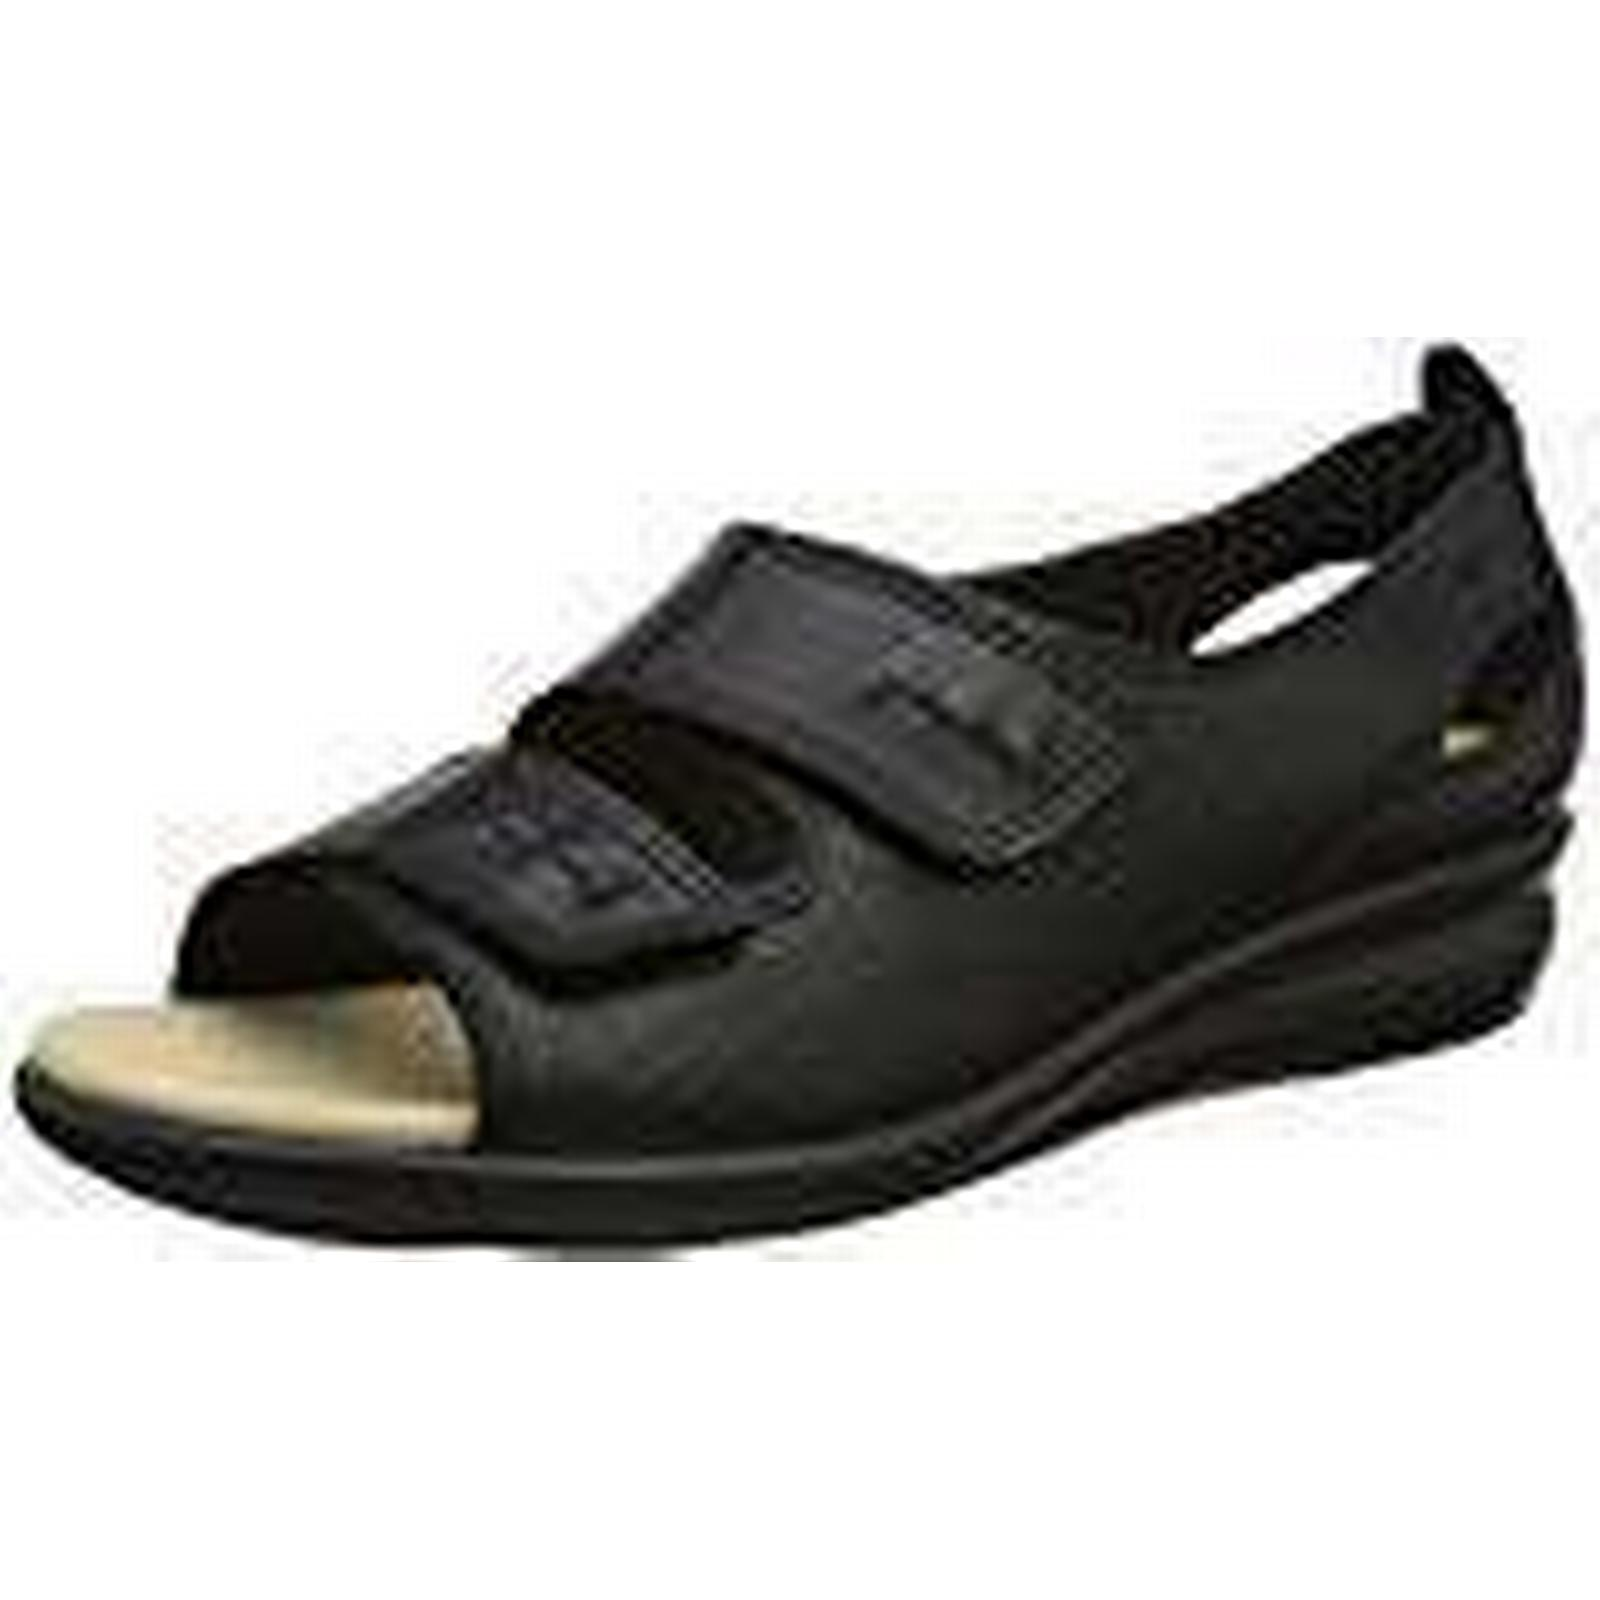 Hotter (Black), Women''s Florence Open-Toe Sandals, (Black), Hotter 4.5 UK 37.5 EU 5e352f